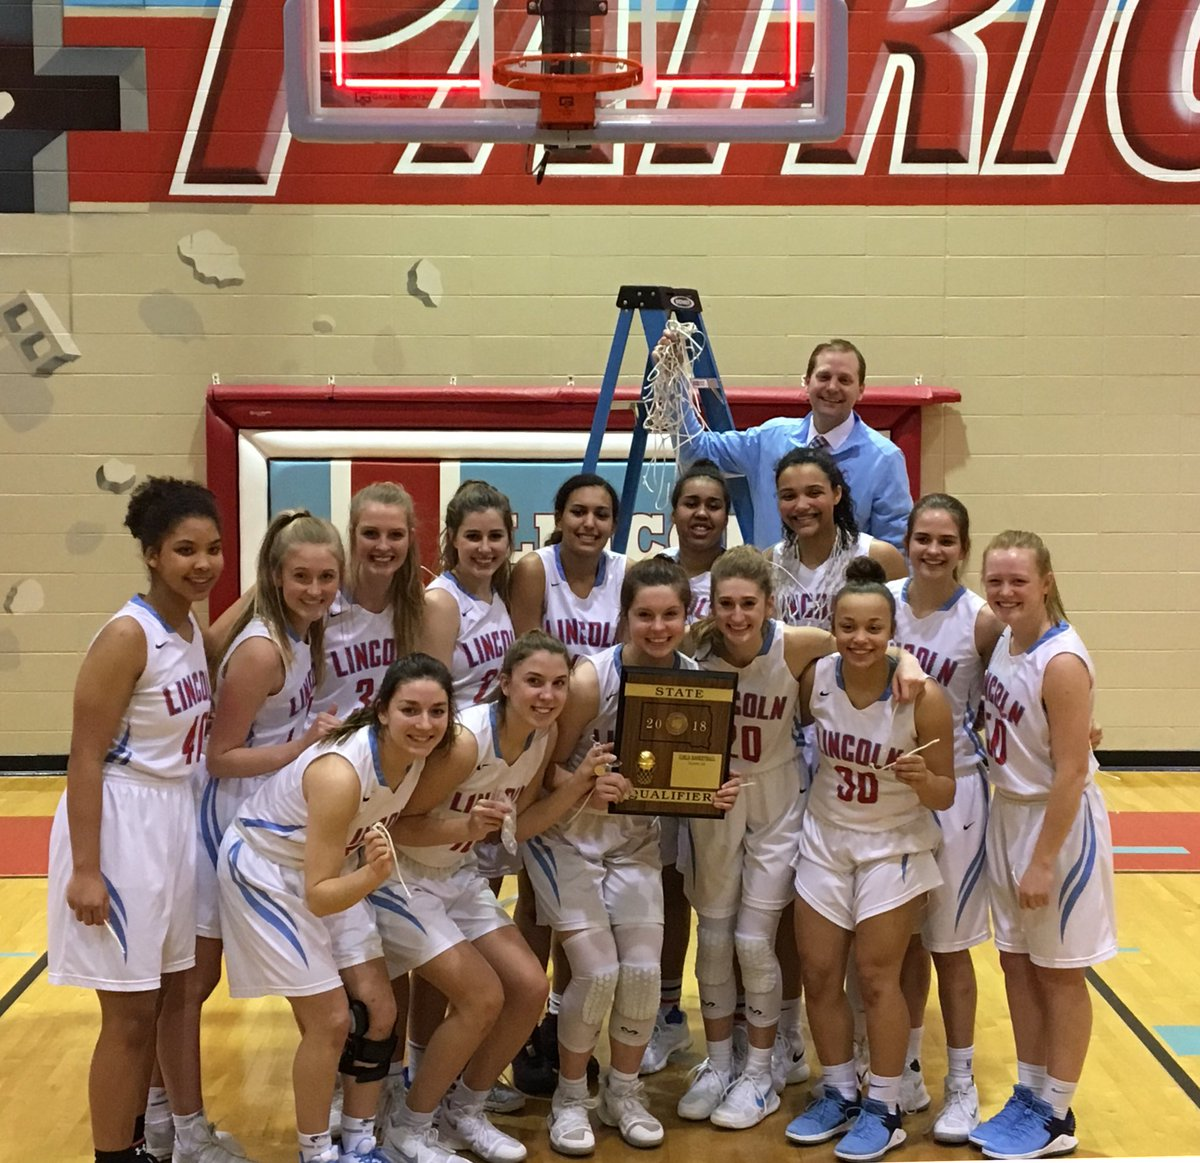 The LHS girls basketball team beat Watertown  54-38 on March 2. The team has advanced to the State tournament.